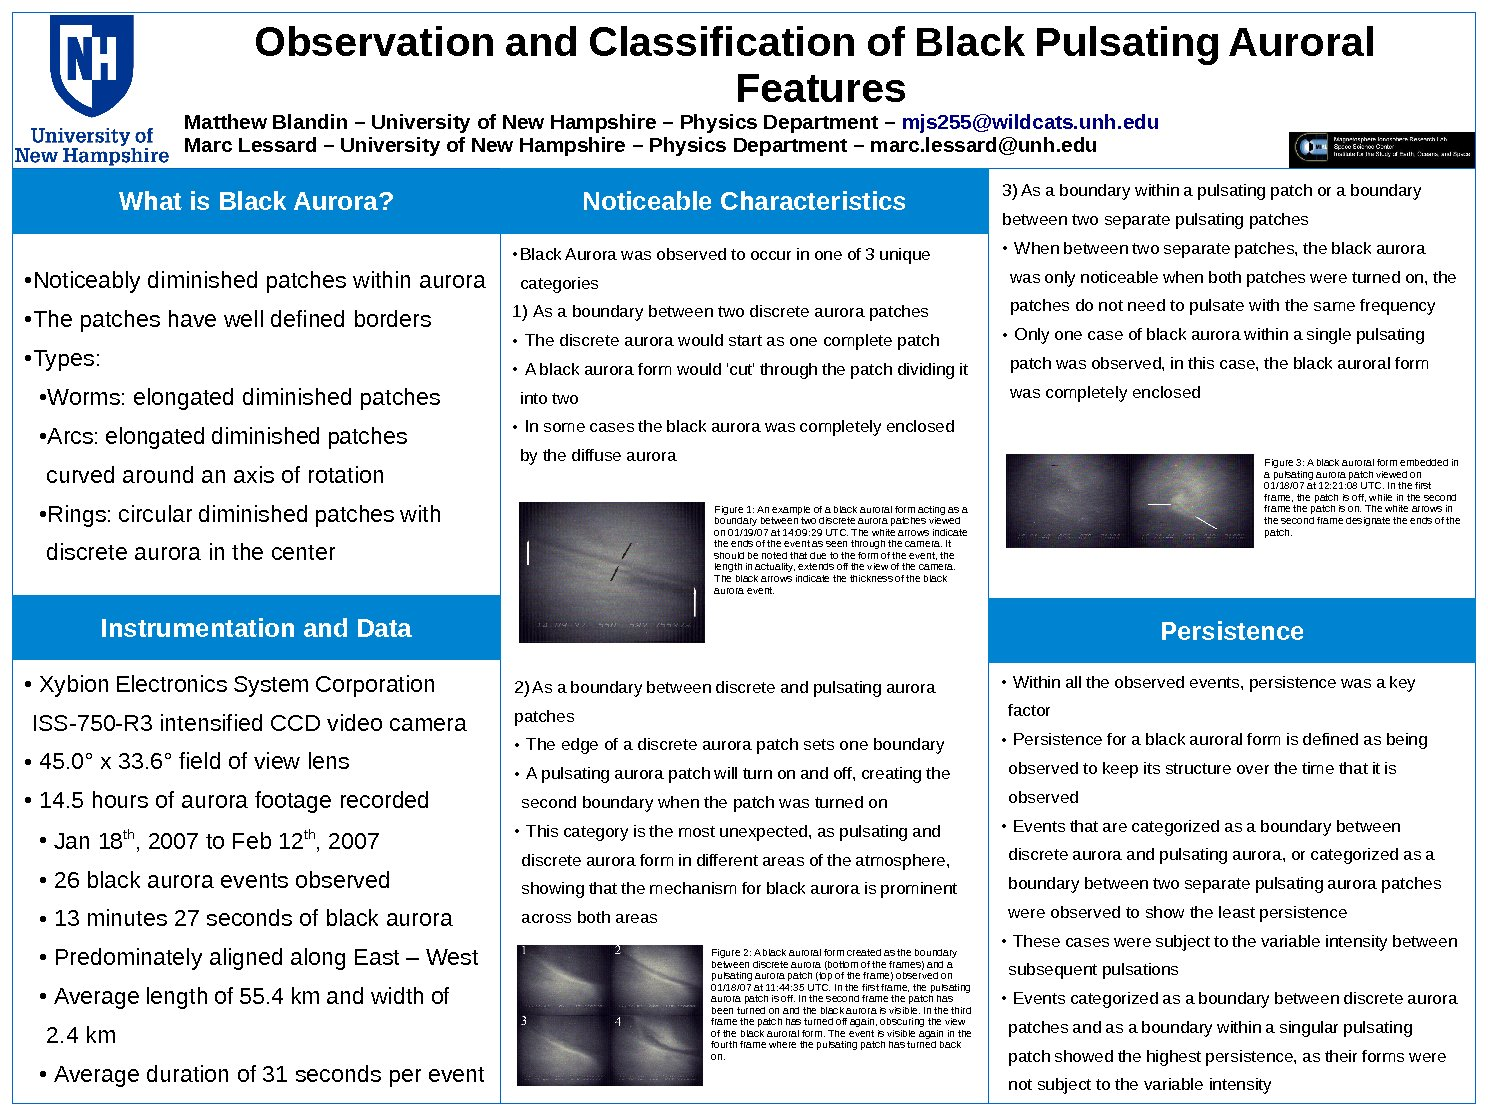 Observations And Classifications Of Black Pulsating Aurora by Mjs255